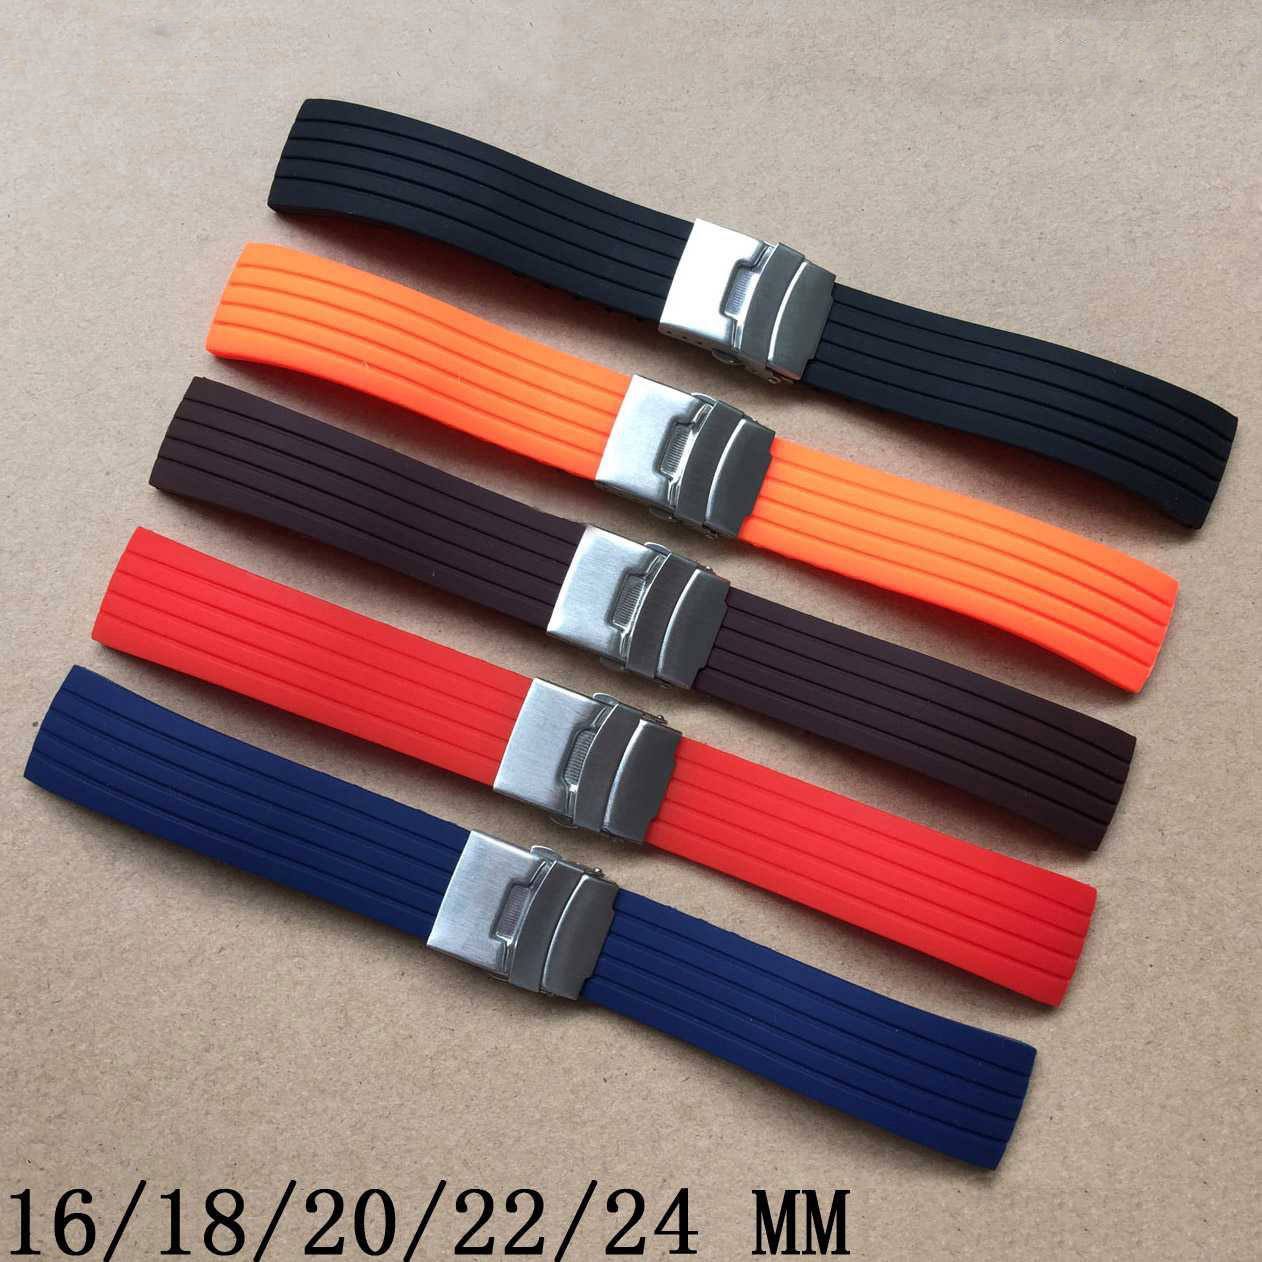 Silicone Rubber Watch Strap16mm 18mm 20mm 22mm 24mm Watch Strap Band Deployment Buckle Waterproof BLack For Casio Watchbands